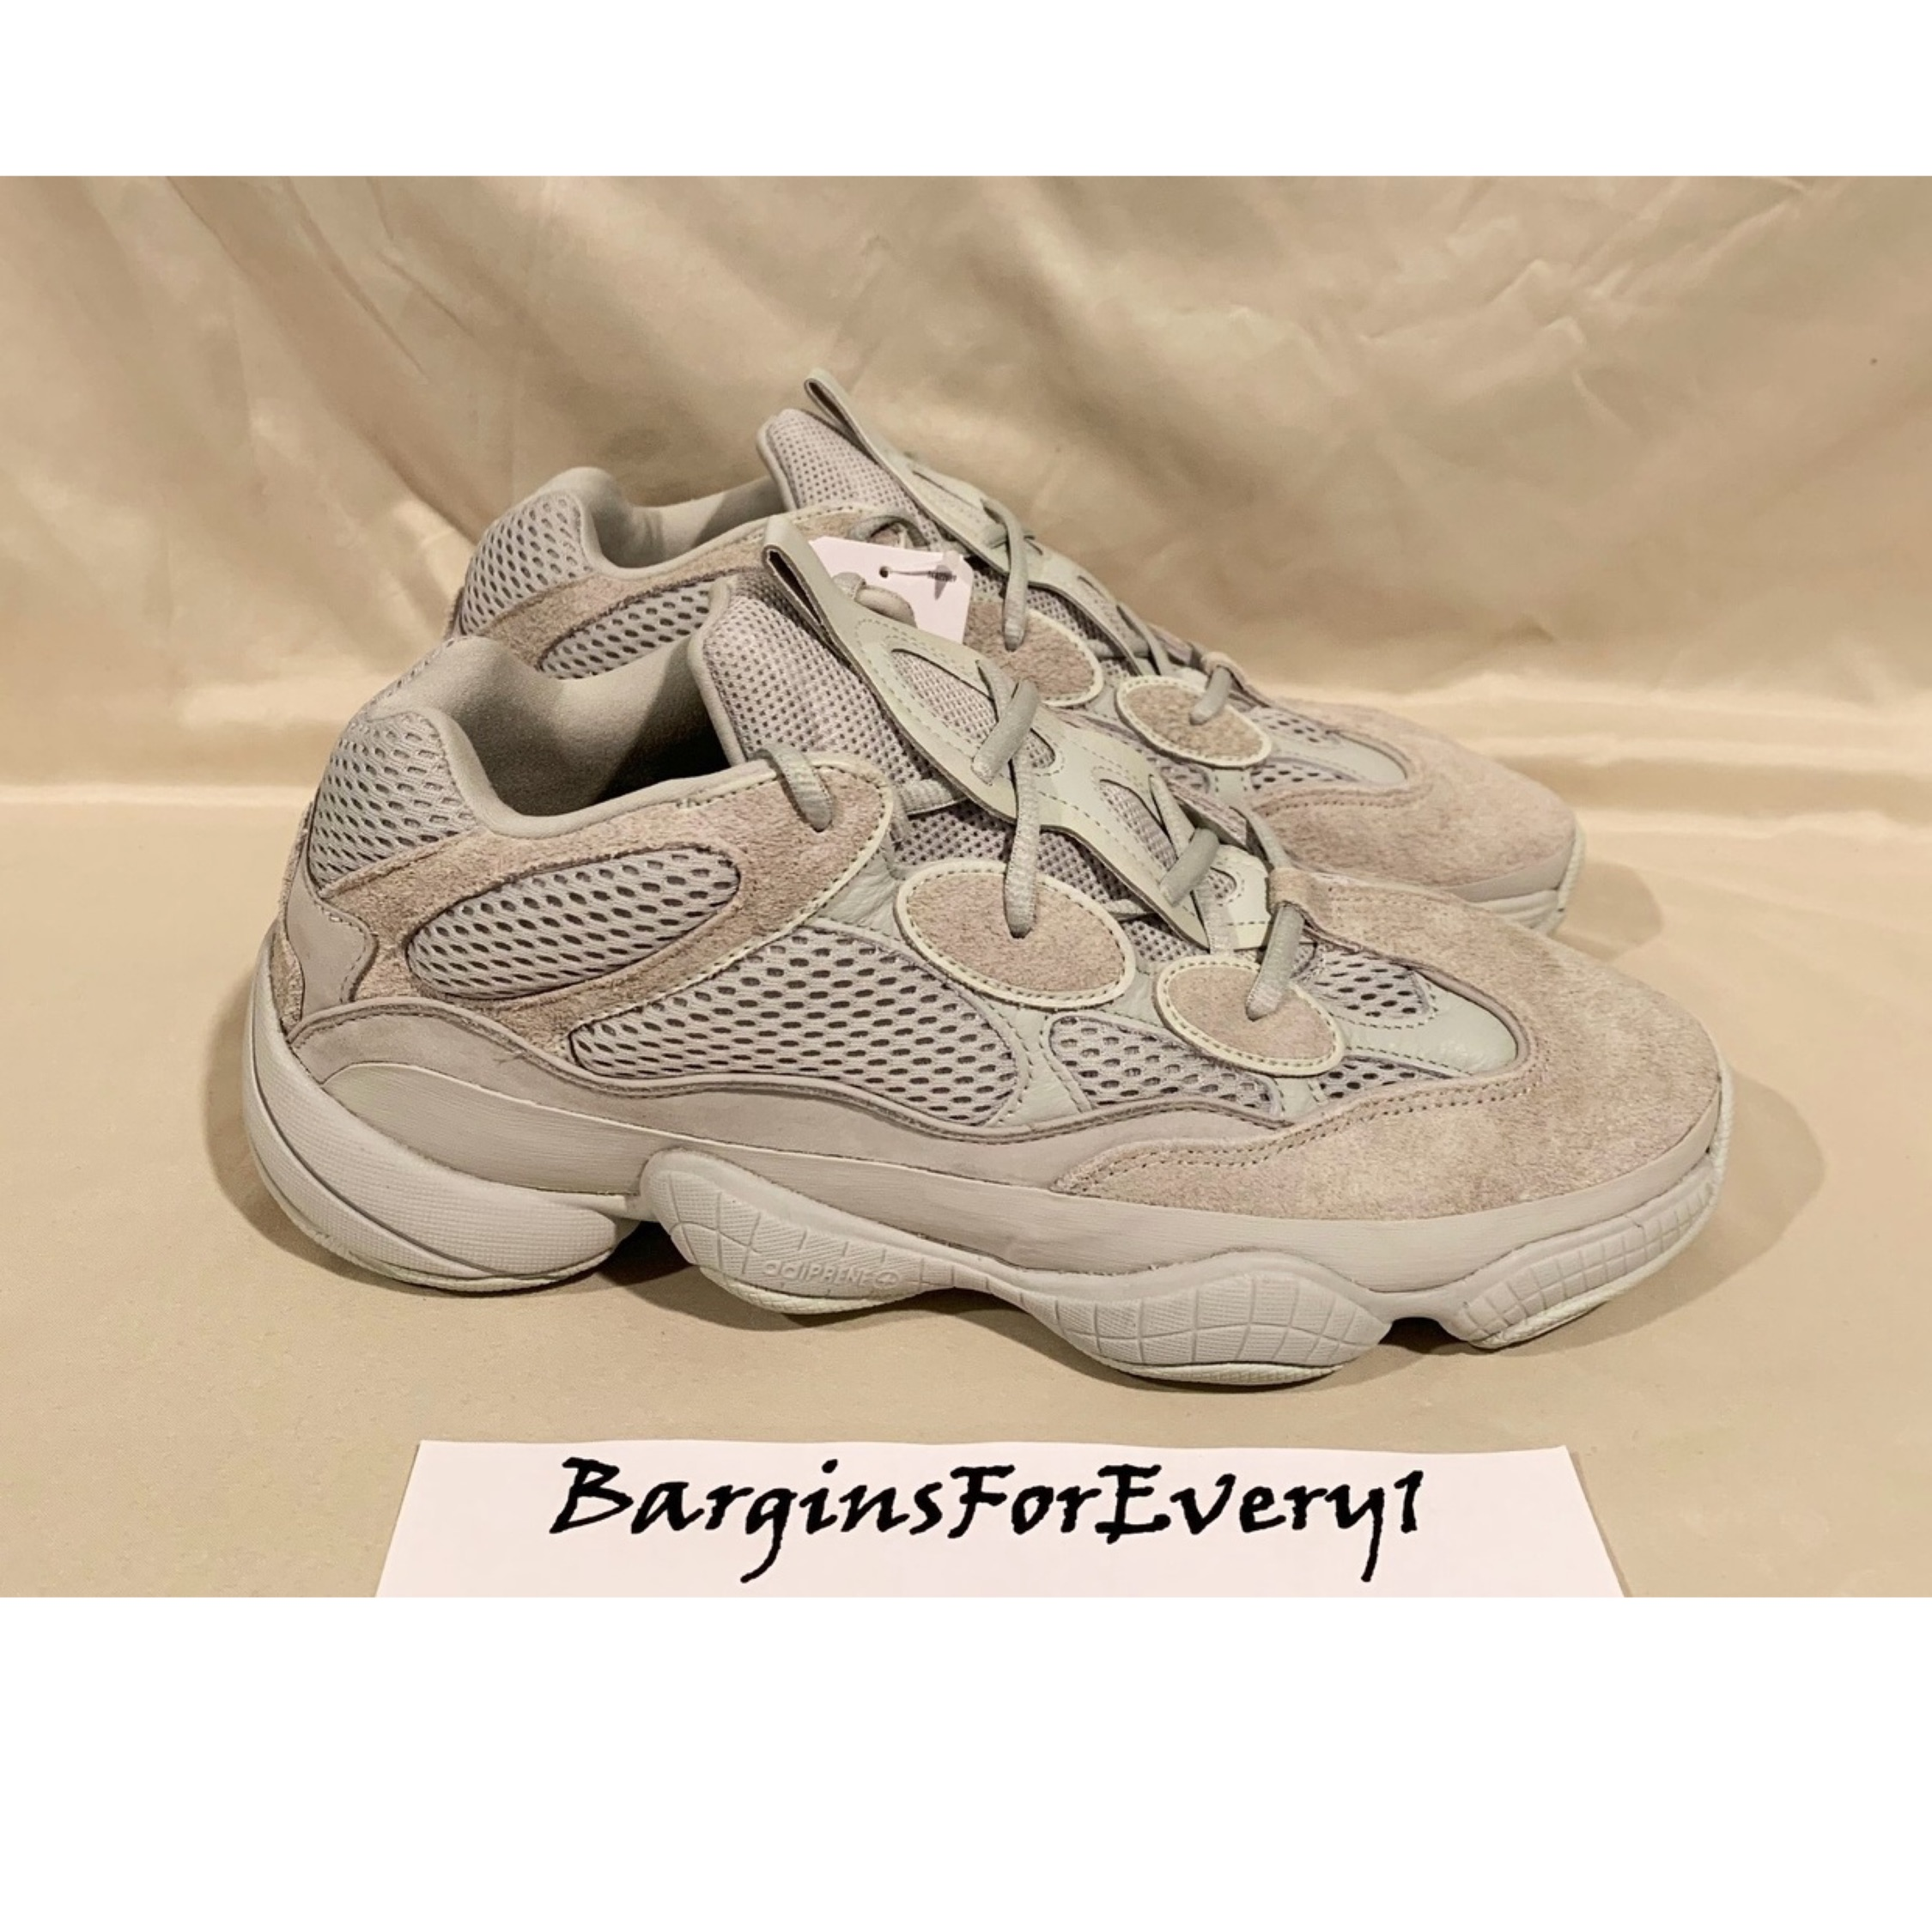 pretty nice affeb f046f New Adidas Yeezy Boost 500 Salt